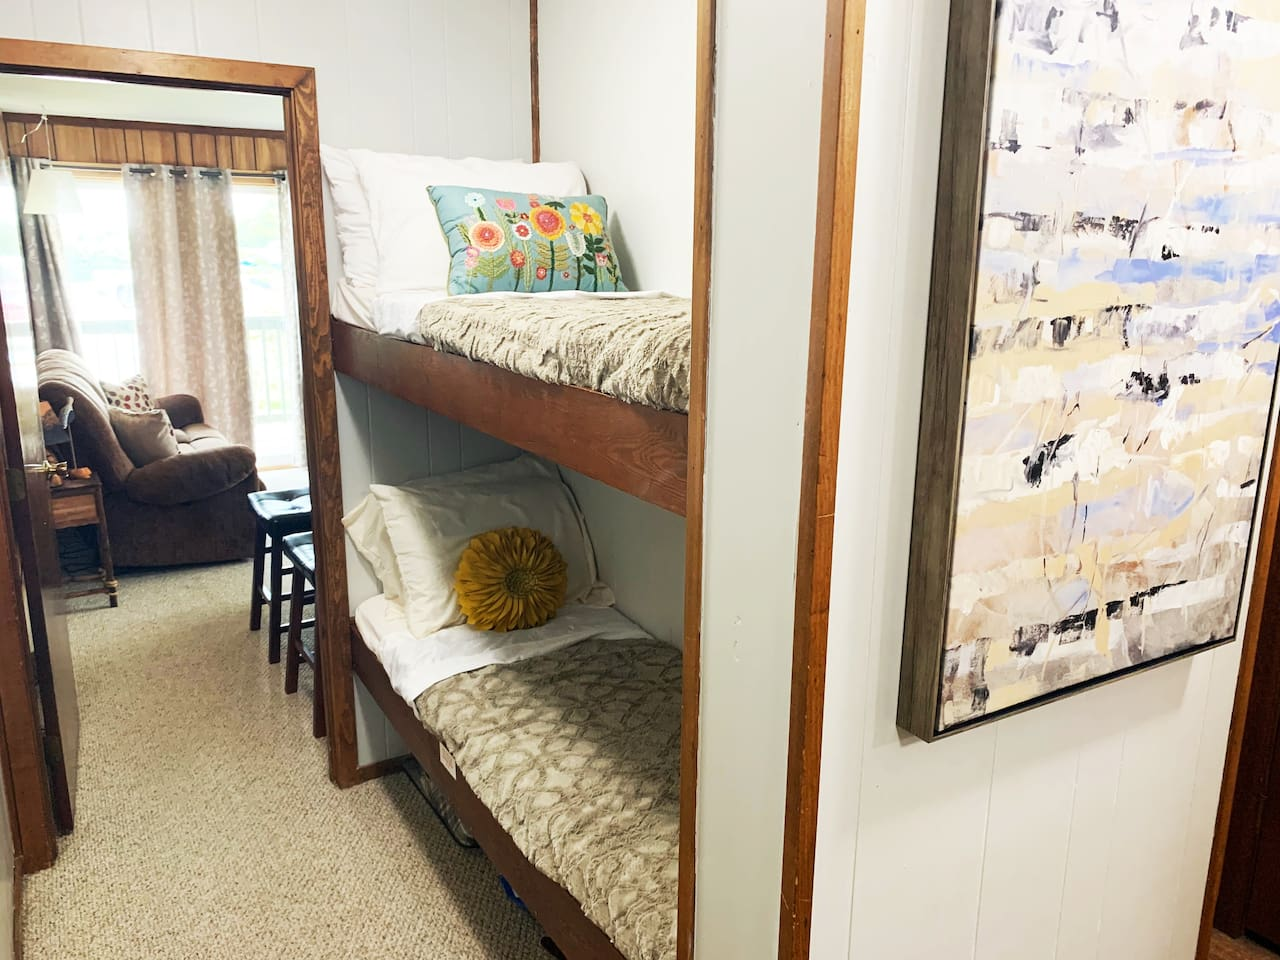 Cozy bunk beds for your kids to nestle in at night!  *(Children 60lbs and under only)